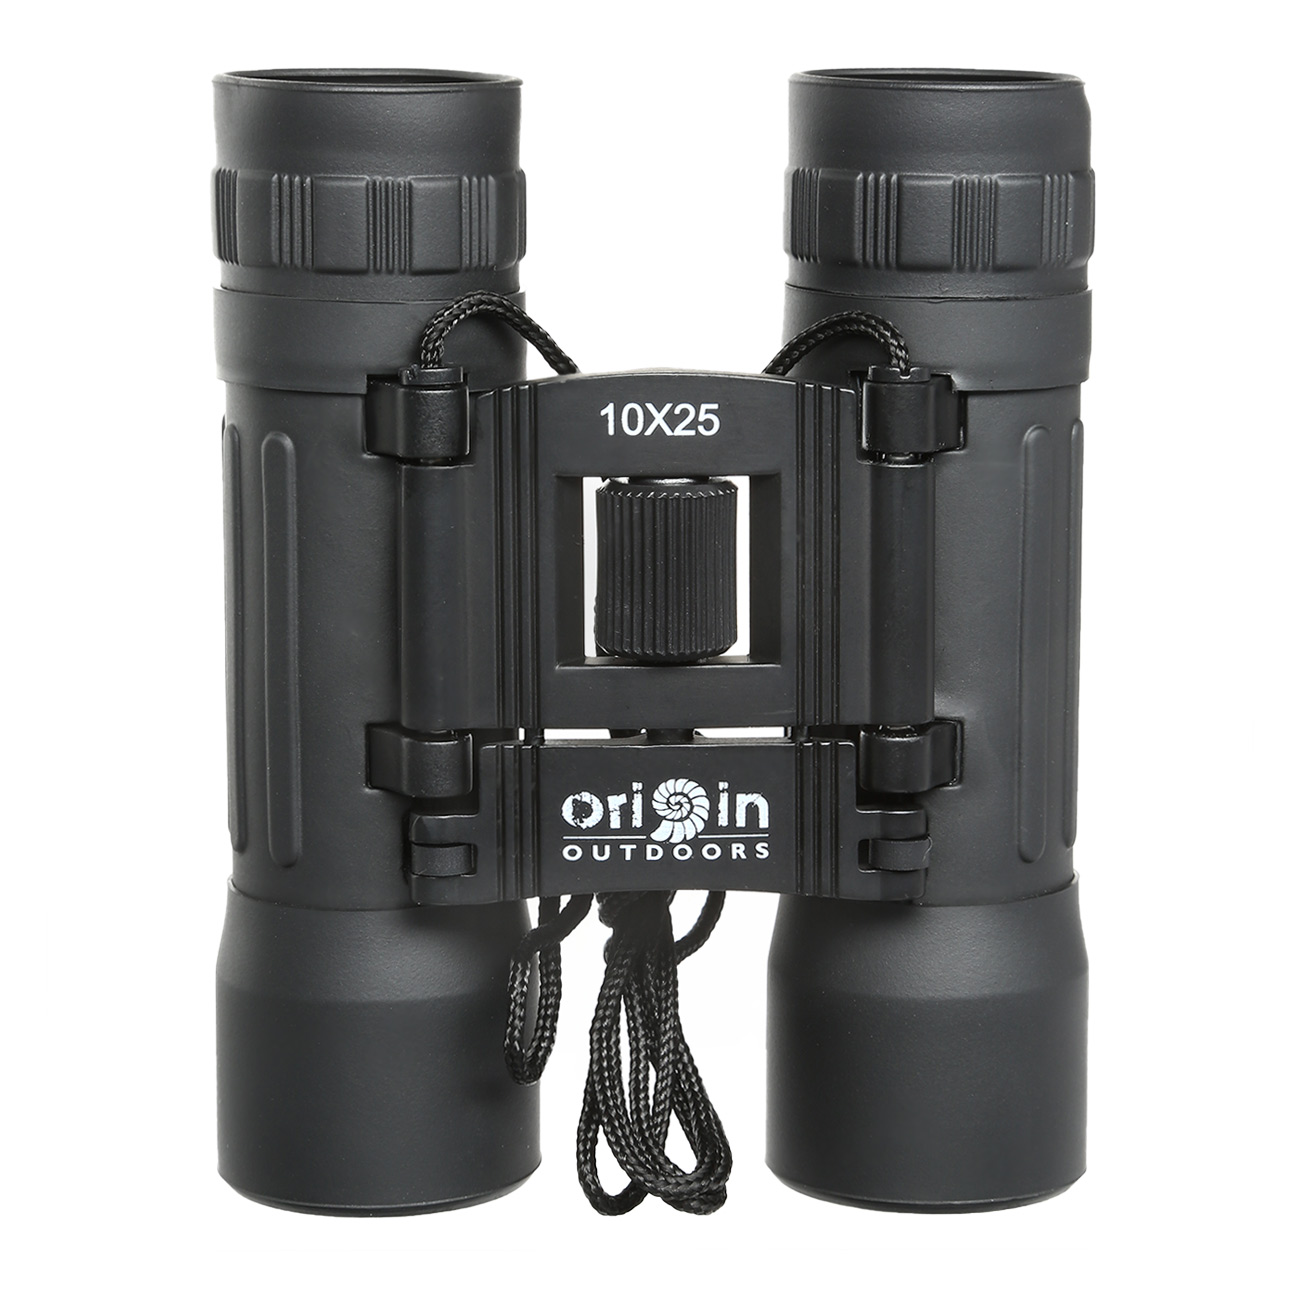 Origin Outdoors Fernglas Tour View 10 x 25 1